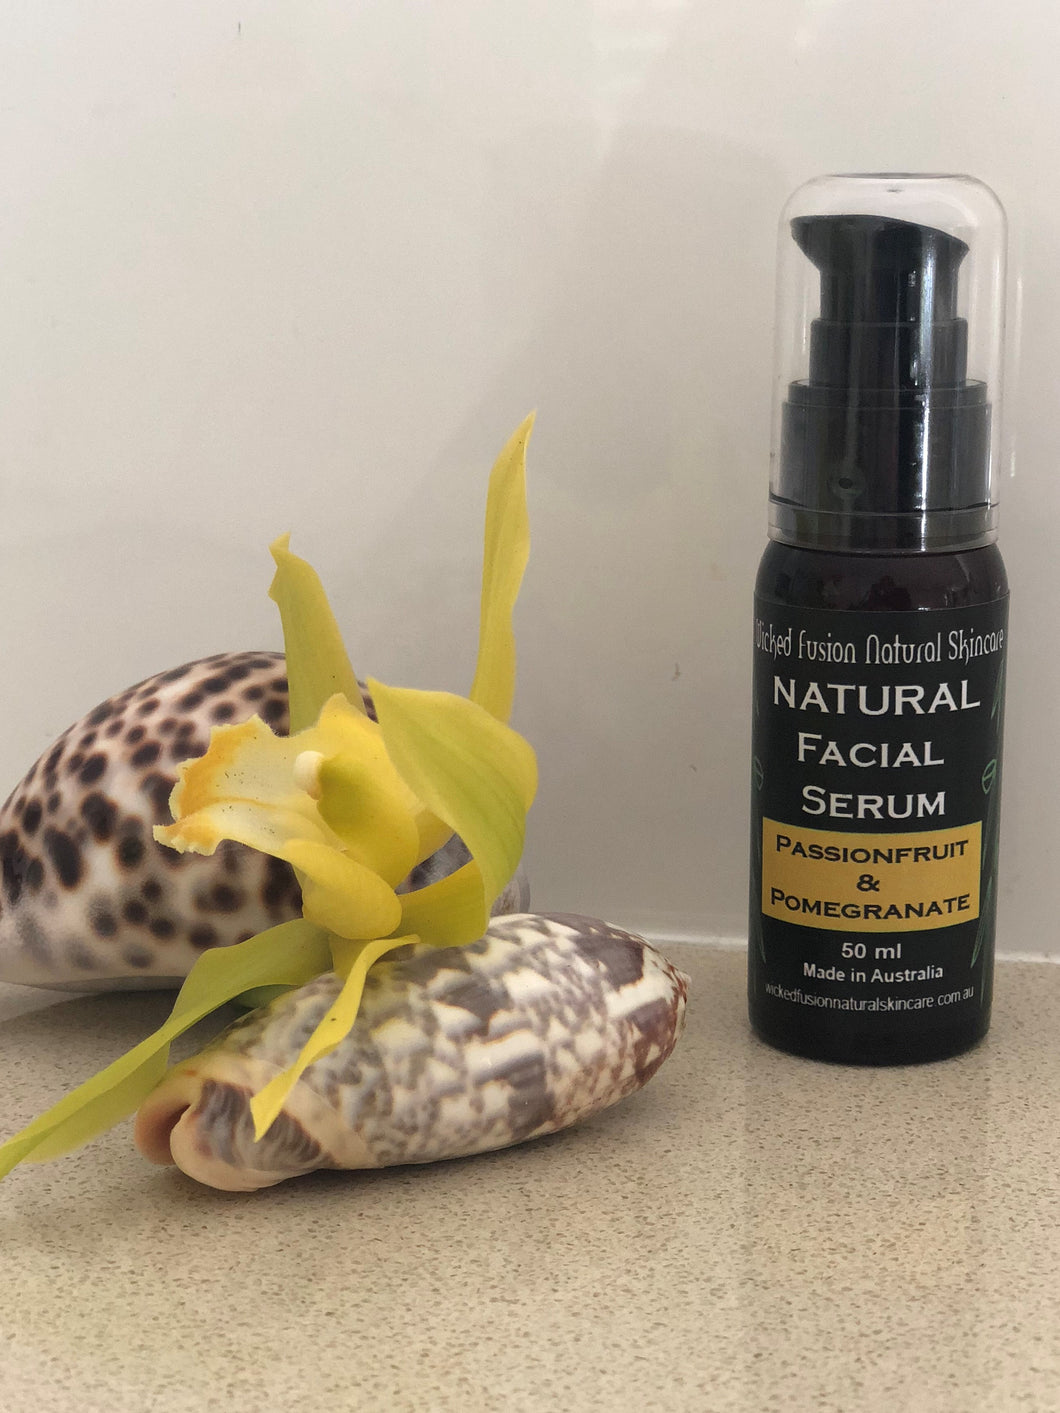 Passionfruit & Pomegranate Facial Serum